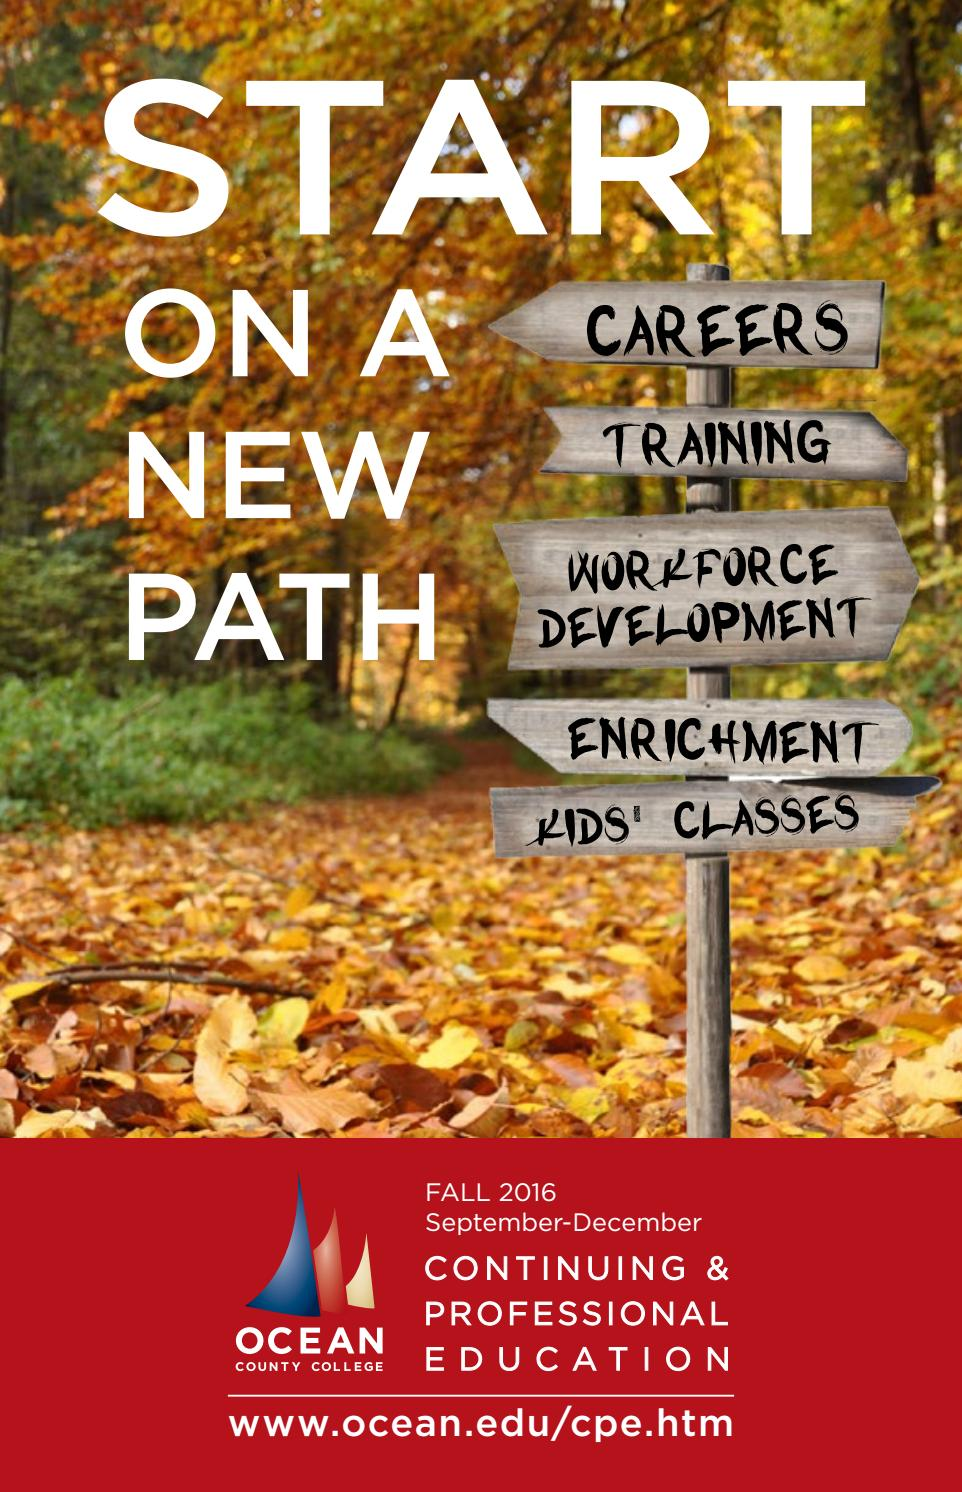 Fall 2016 catalog by Ocean County College - issuu